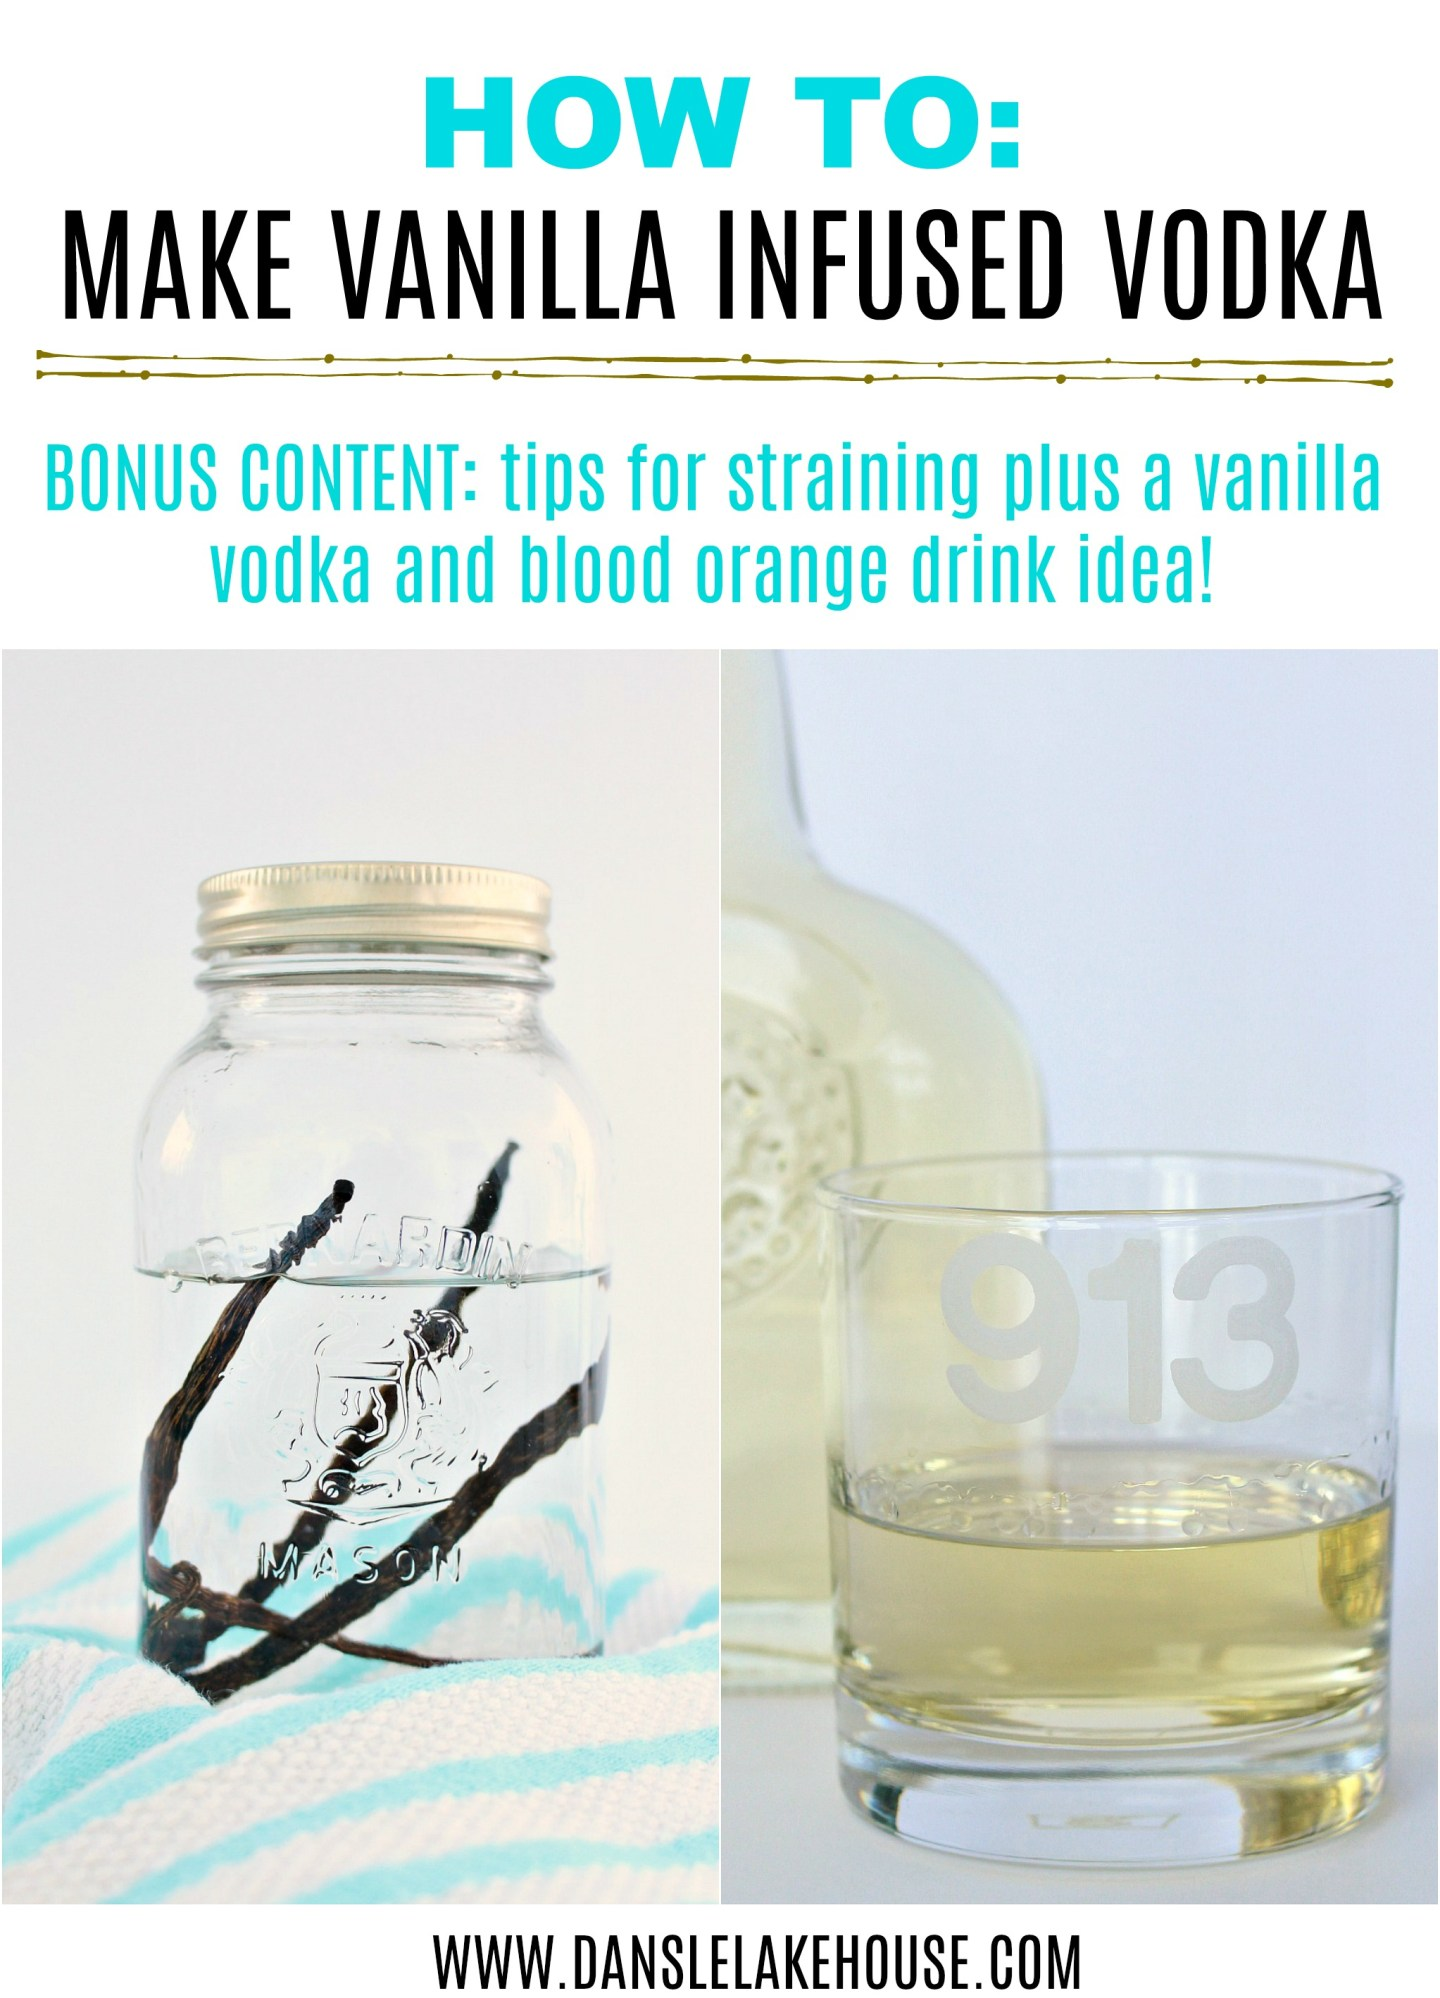 How to Make Vanilla Infused Vodka! Learn How Easy it is to Make DIY Infused Vodka - Tips and Tricks, Plus a Great Drink Idea Too. #infusedvodka #drinkideas #drinkrecipes #vanillavodka